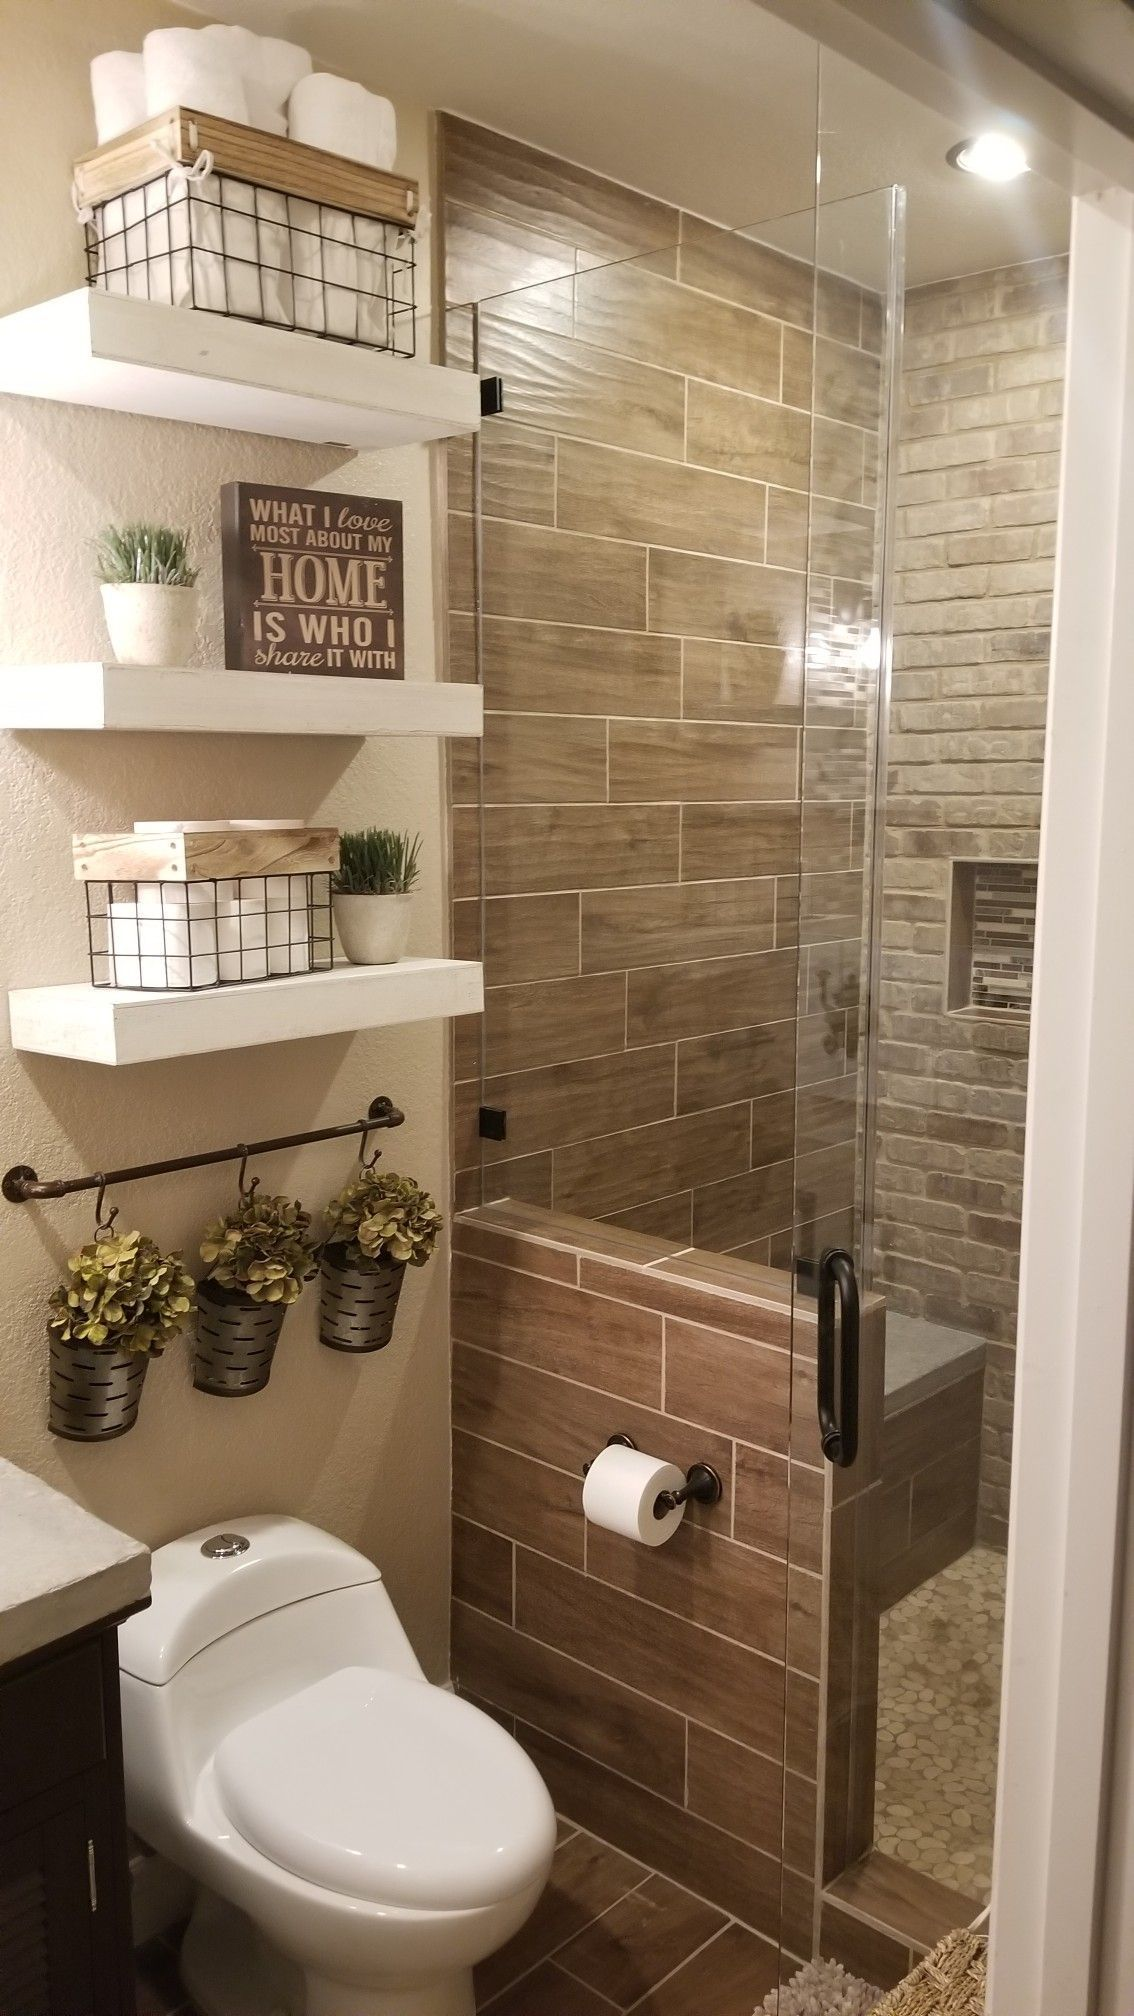 Country Bathroom Ideas Everyone Should Know In 2020 Wohnung